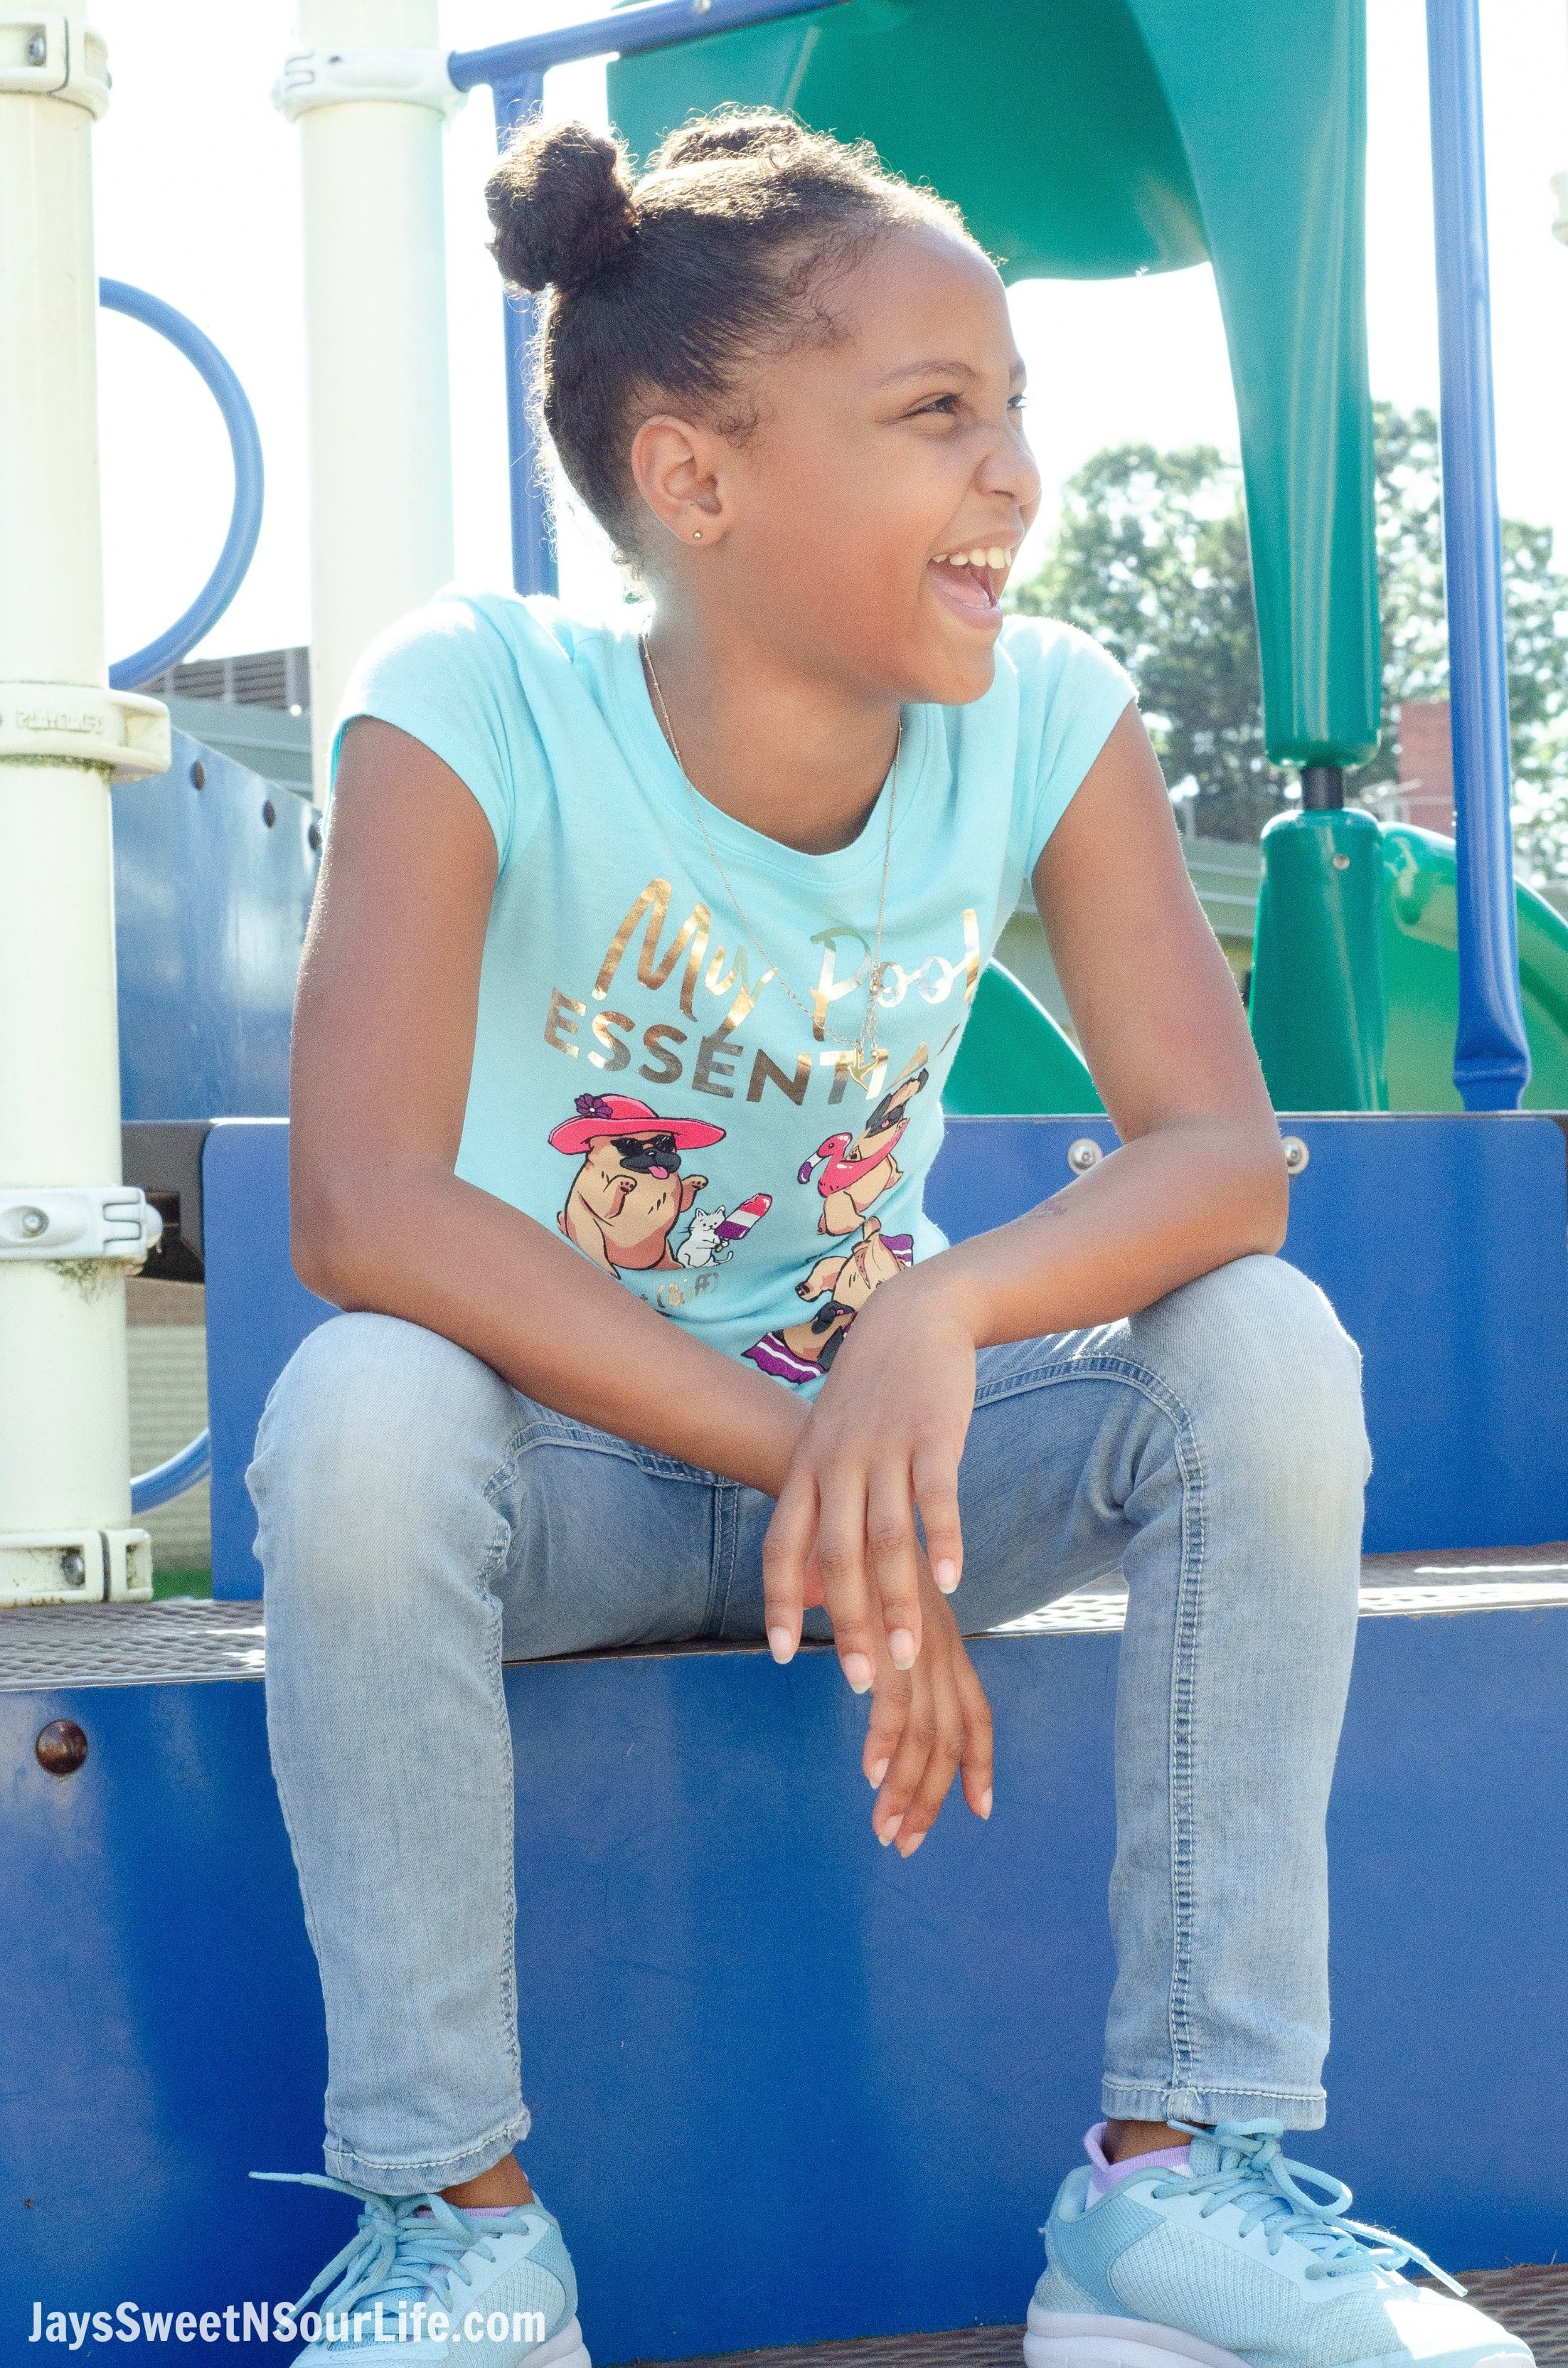 b6300c8e73536 Back To School Must Have Fashion For Tweens - Jays Sweet N Sour Life